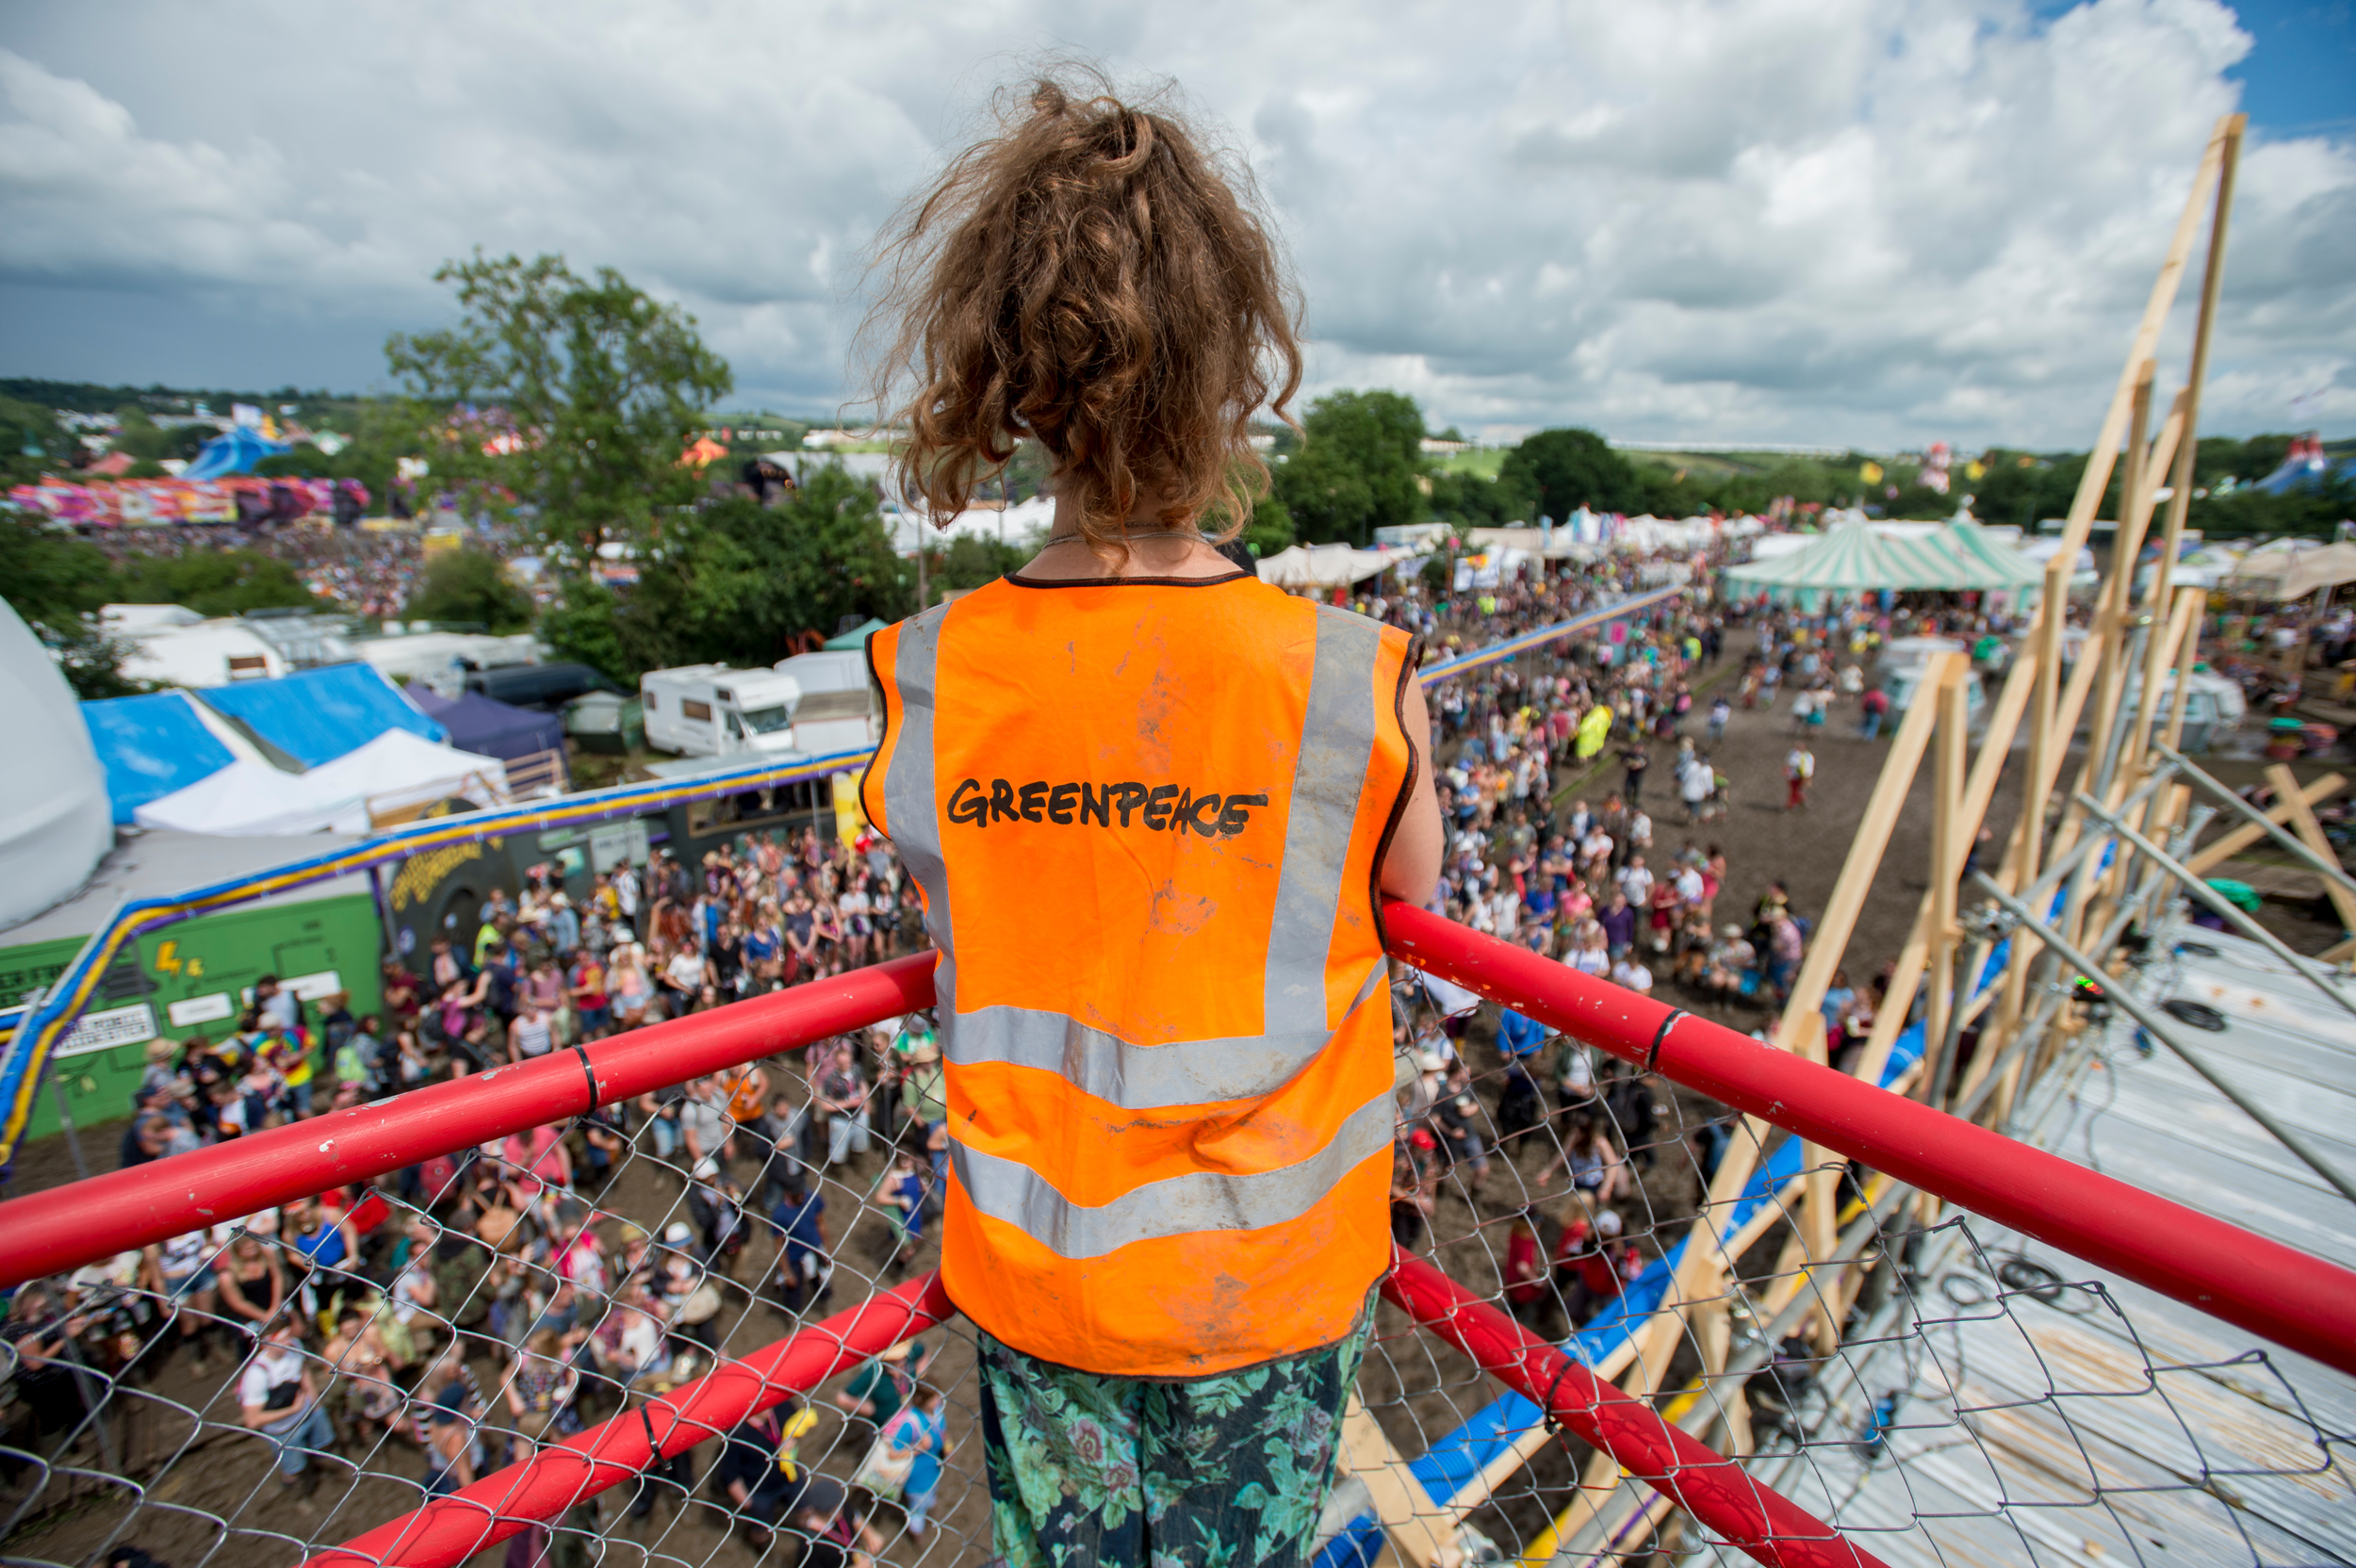 festival volunteer overlooking crowds